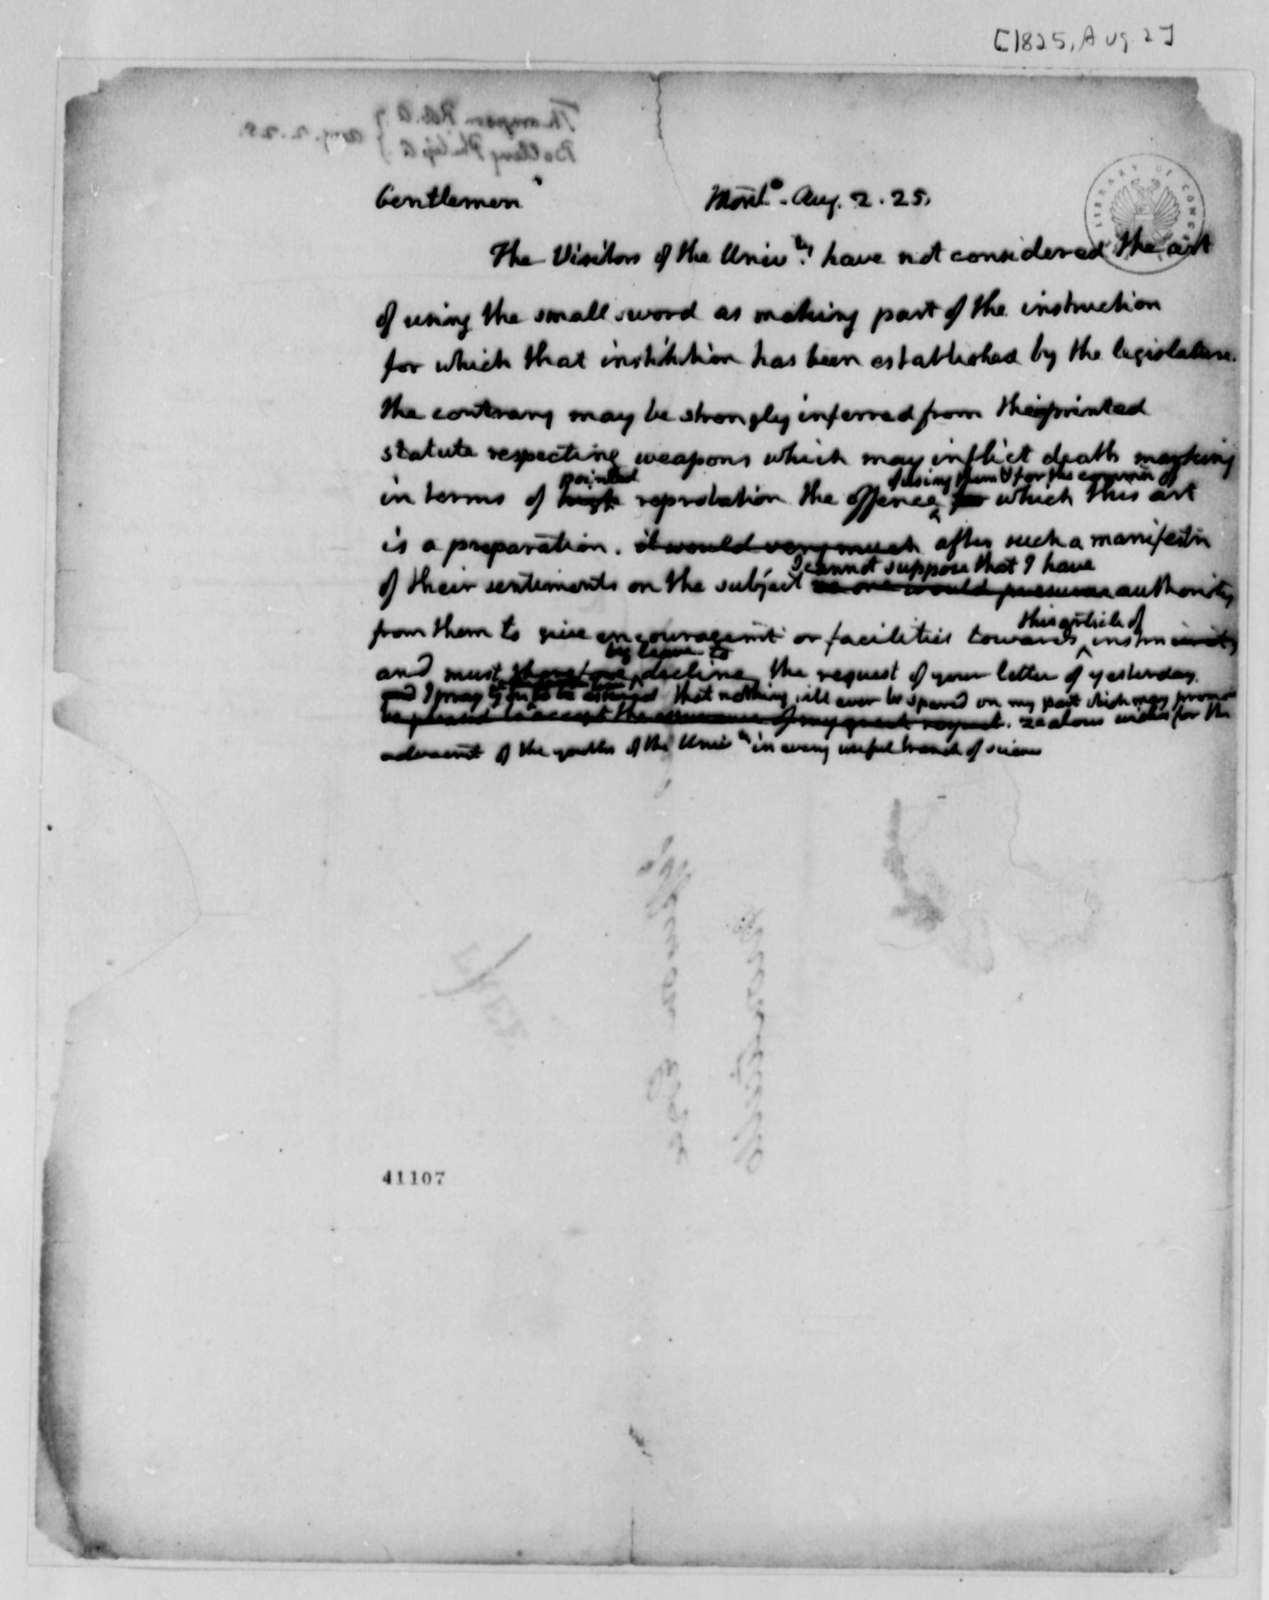 Thomas Jefferson to Philip A. Bolling and Robert A. Thompson, August 2, 1825, with Draft